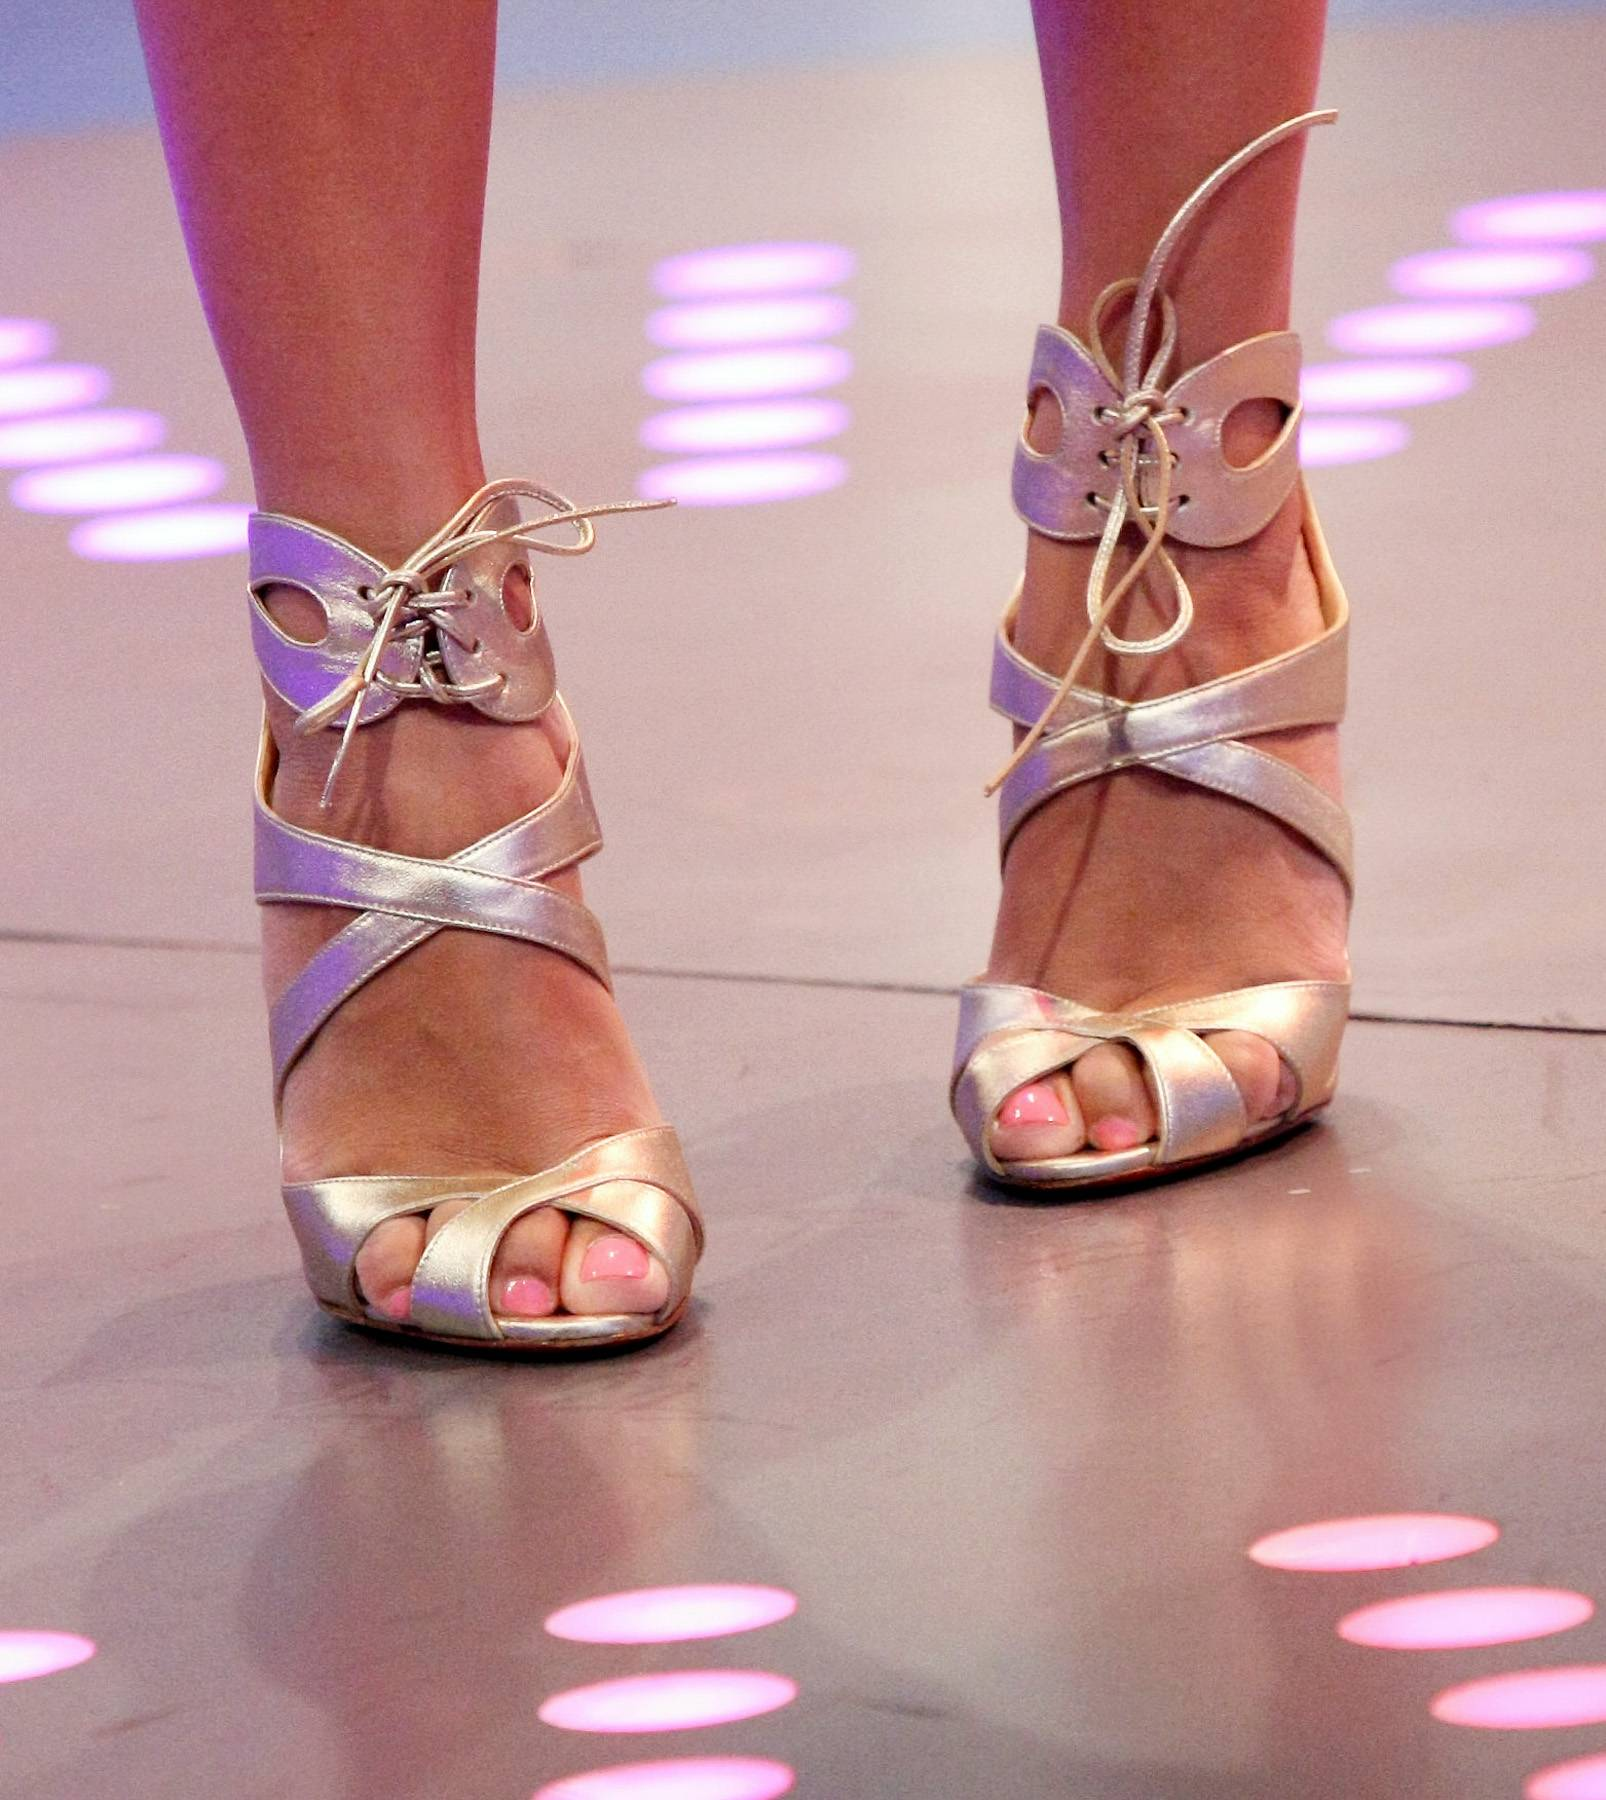 Other Worldly - Keshia Chante wears some gold peep toe shoes while on 106. (Photo: Bennett Raglin/BET/Getty Images for BET)